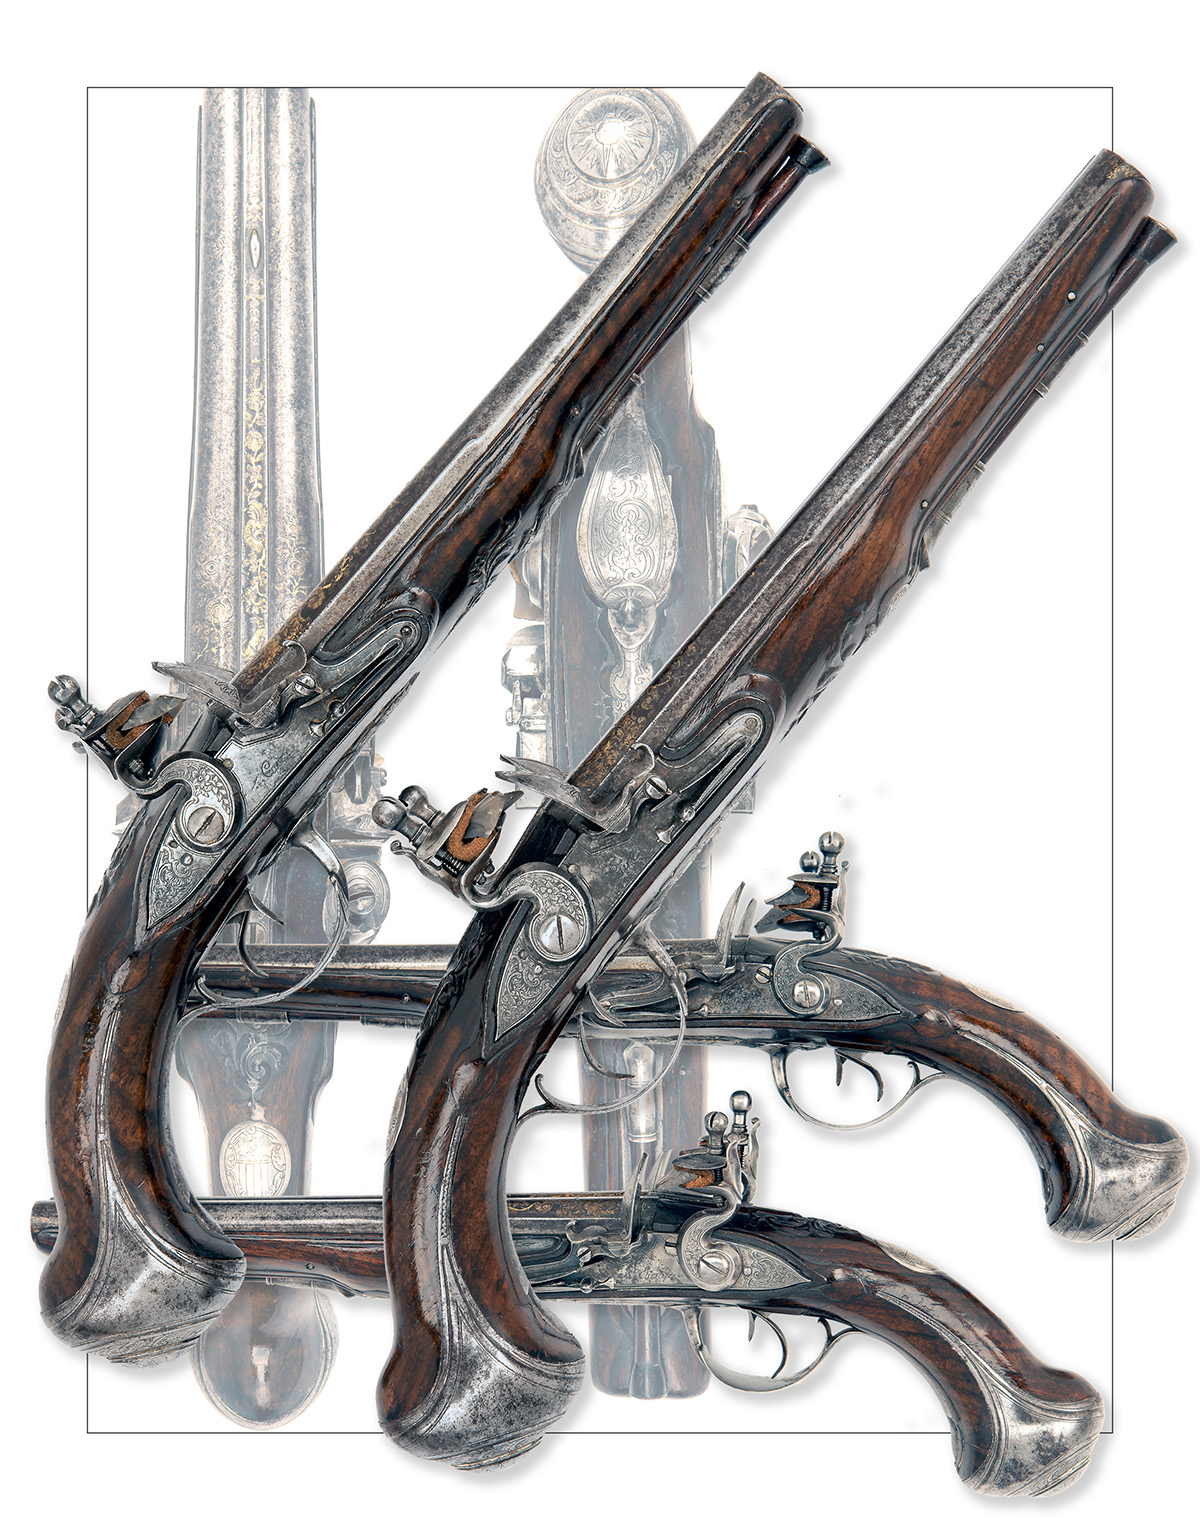 CAIRES, ST ETIENNE, FRANCE A GOOD PAIR OF 28-BORE FLINTLOCK DOUBLE-BARRELLED HOLSTER-PISTOLS, no - Image 8 of 8